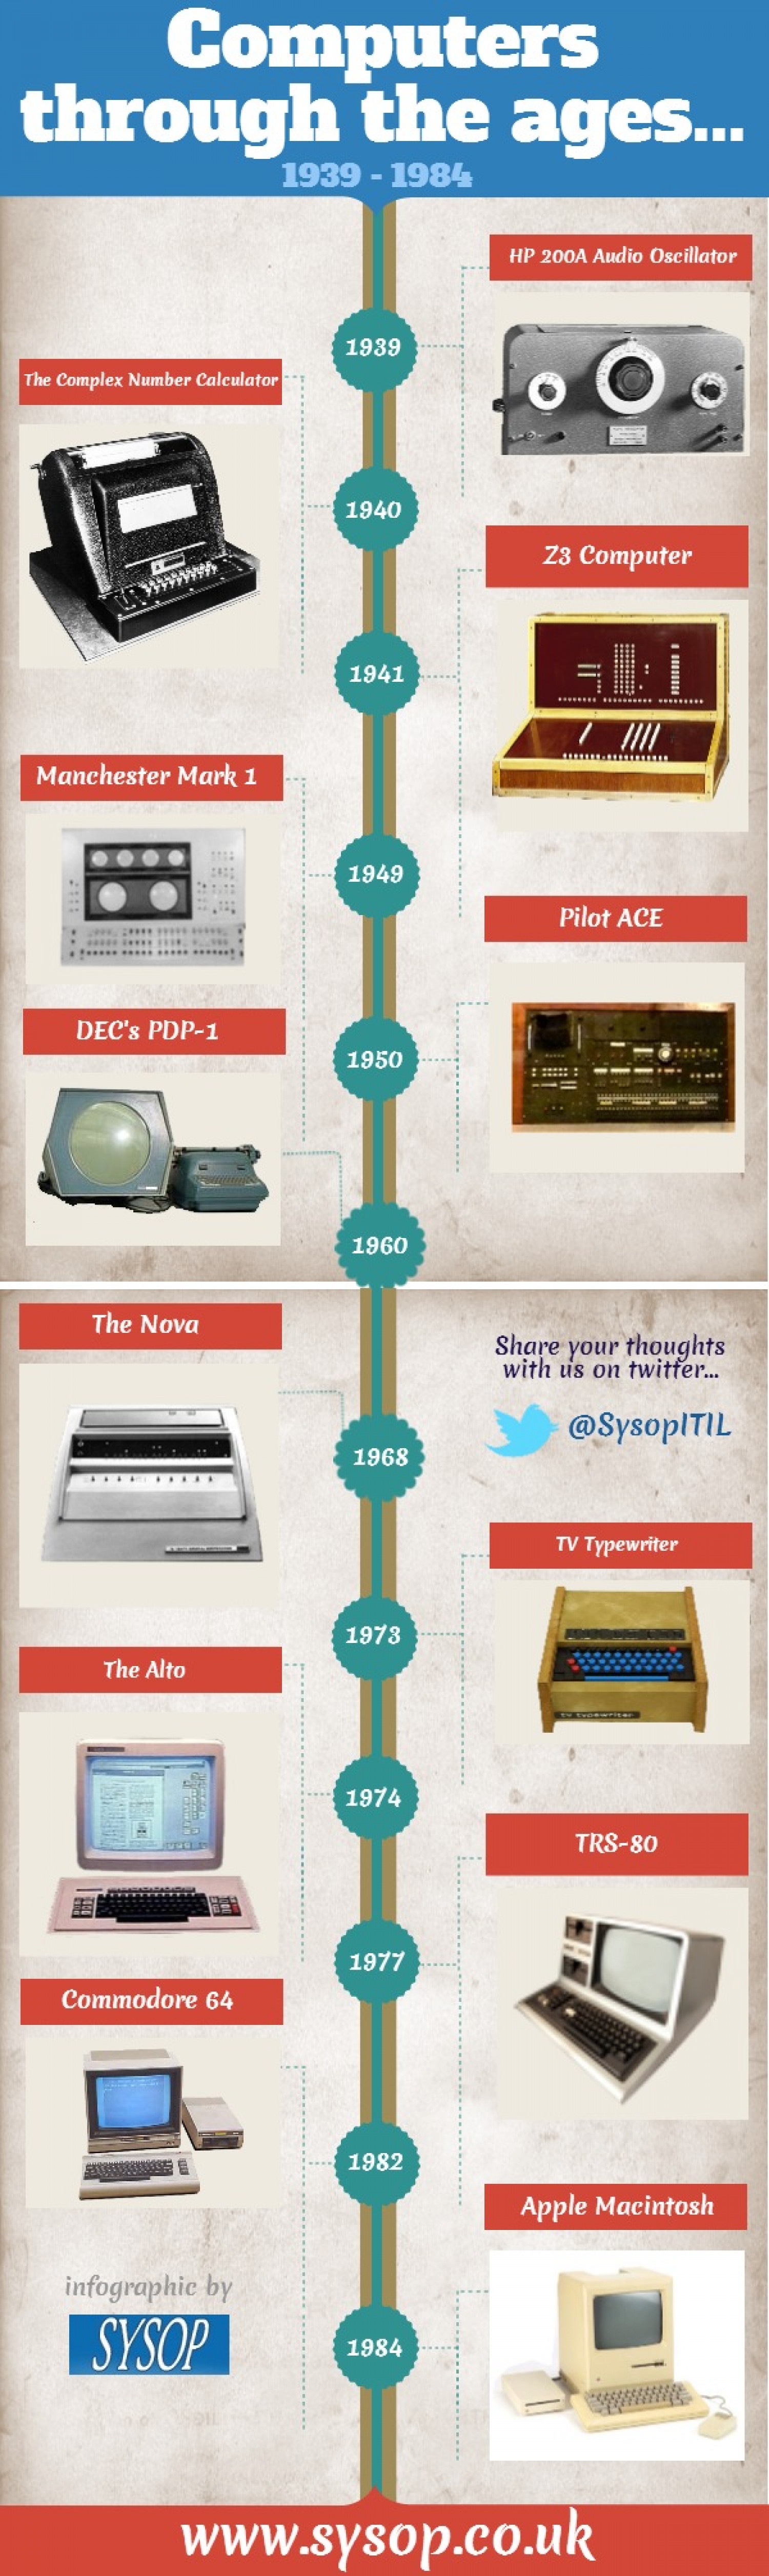 Computers Through The Ages Infographic